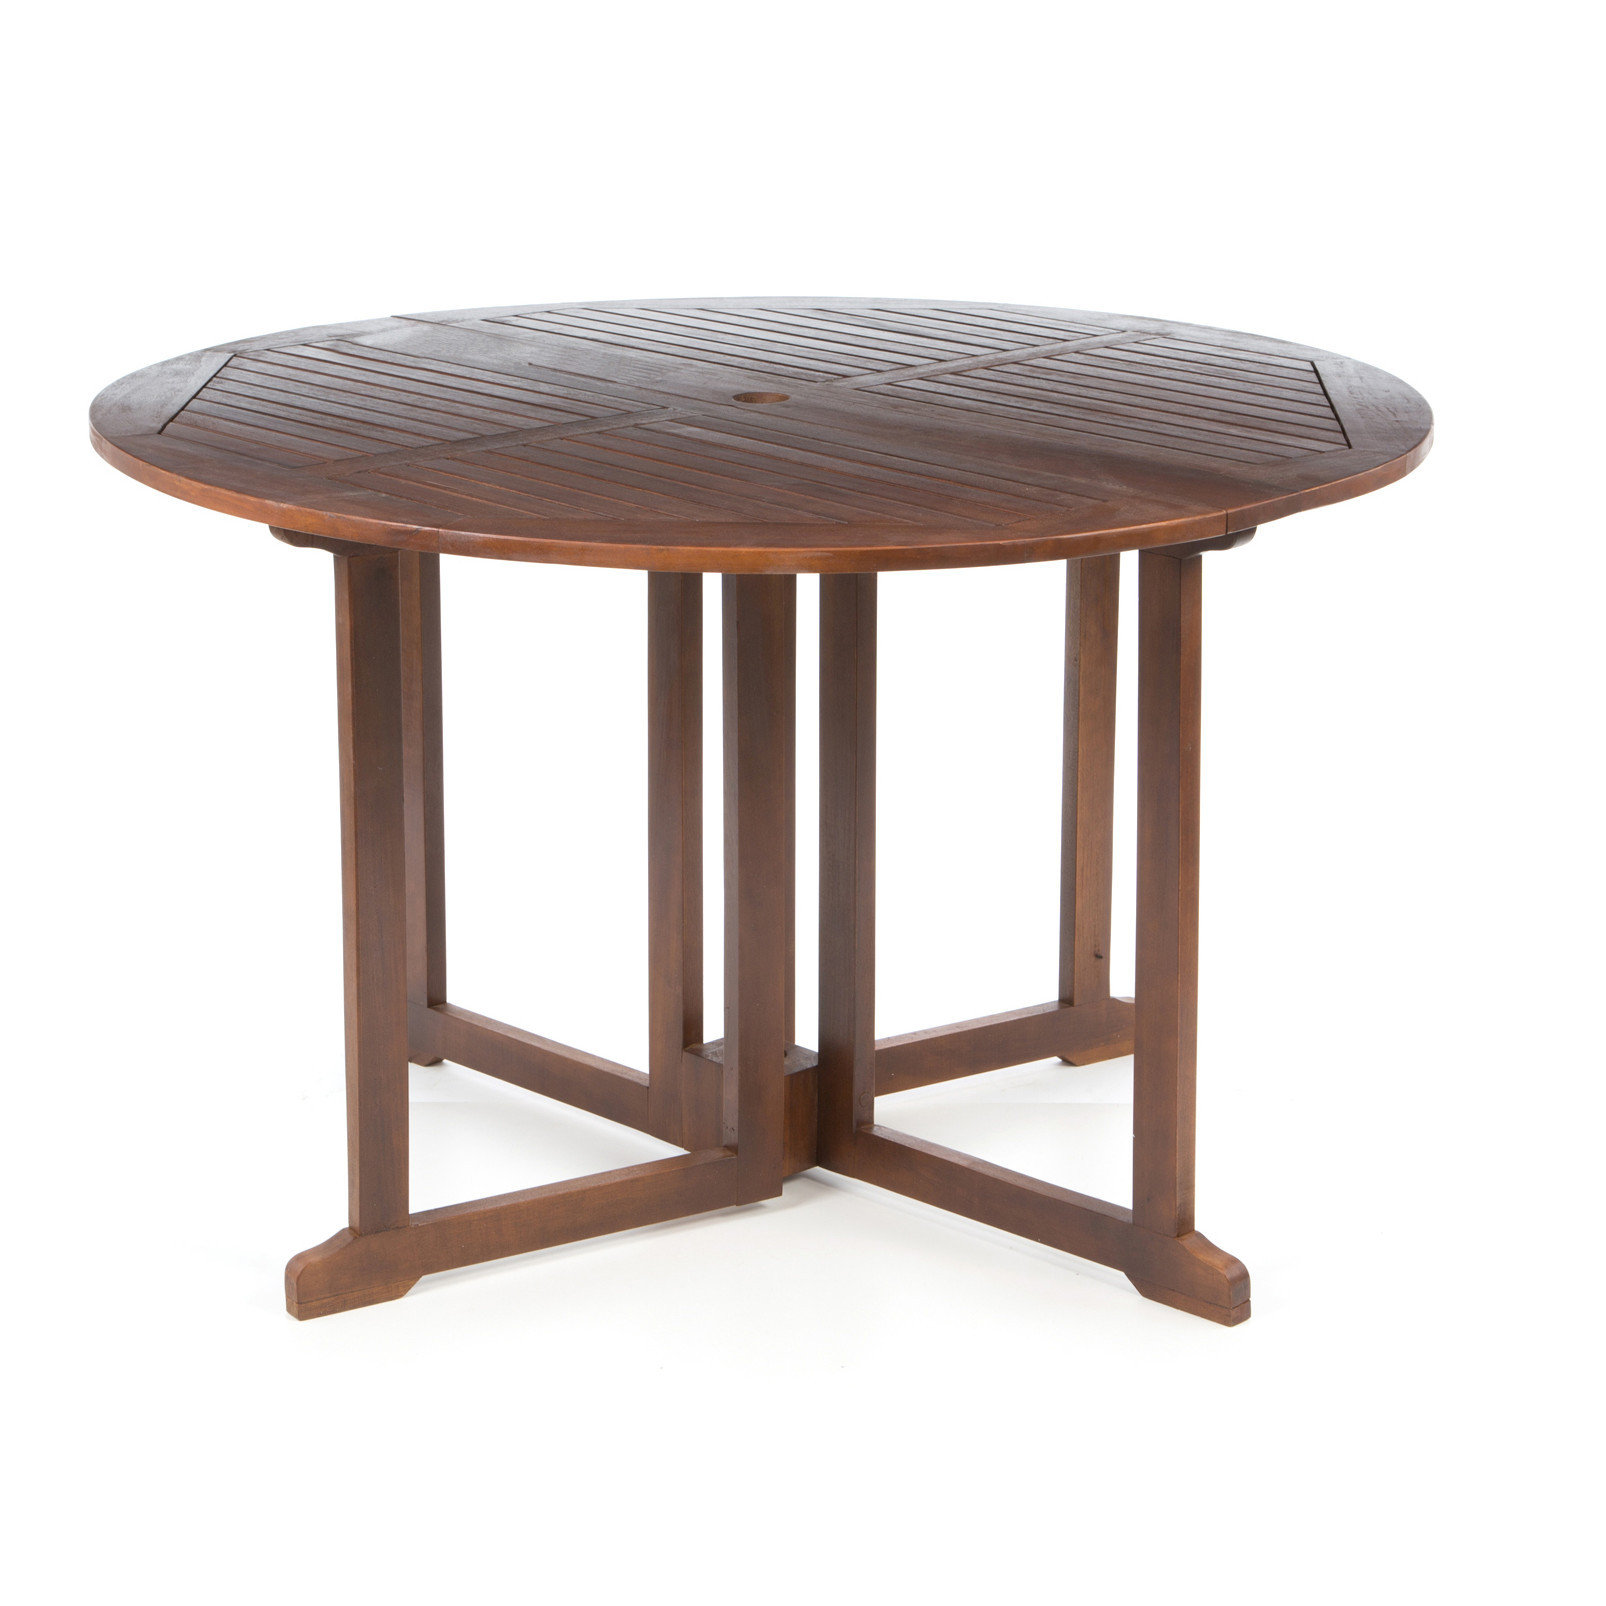 Best ideas about Folding Dining Table . Save or Pin Loon Peak Dover Folding Dining Table & Reviews Now.